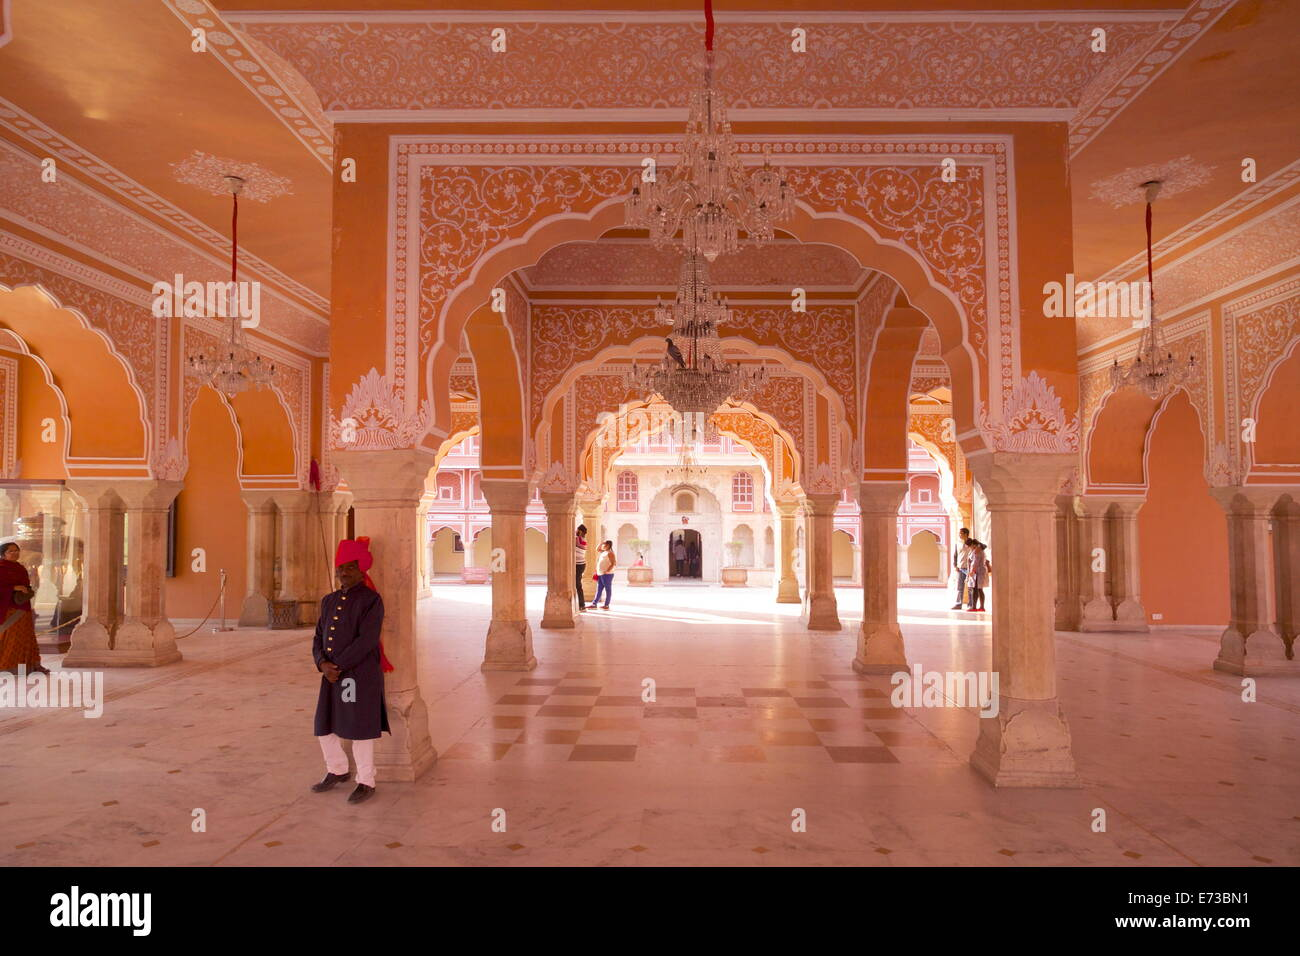 Hall of Public Audience (Diwan-e-Khas), City Palace, Jaipur, Rajasthan, India, Asia - Stock Image